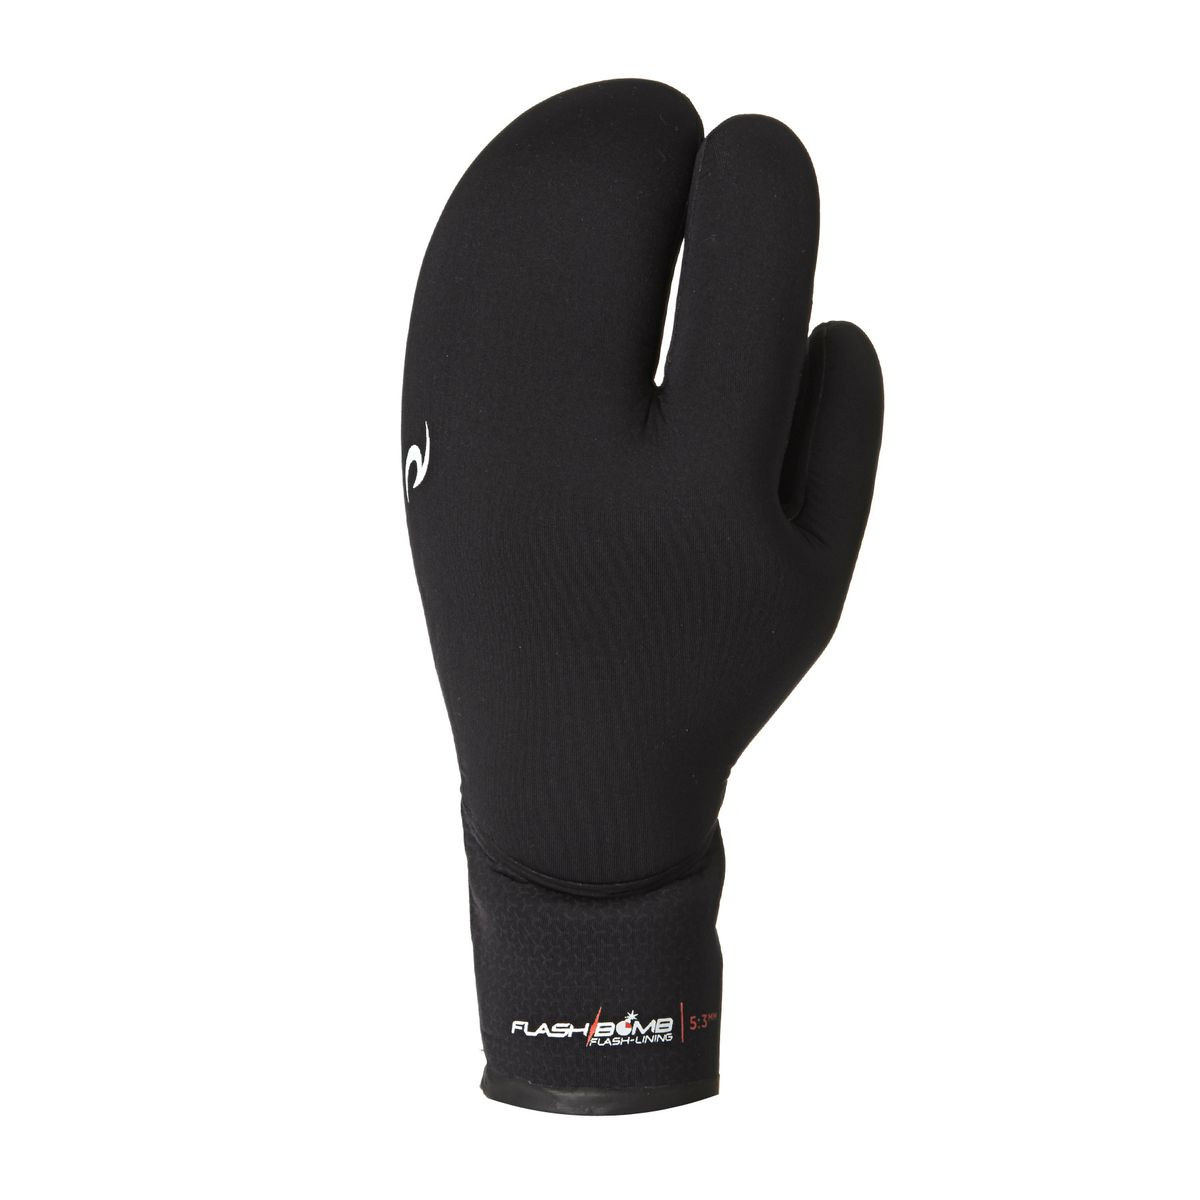 Rip Curl Flashbomb 5/3mm 3 Finger Wetsuit Gloves - Black